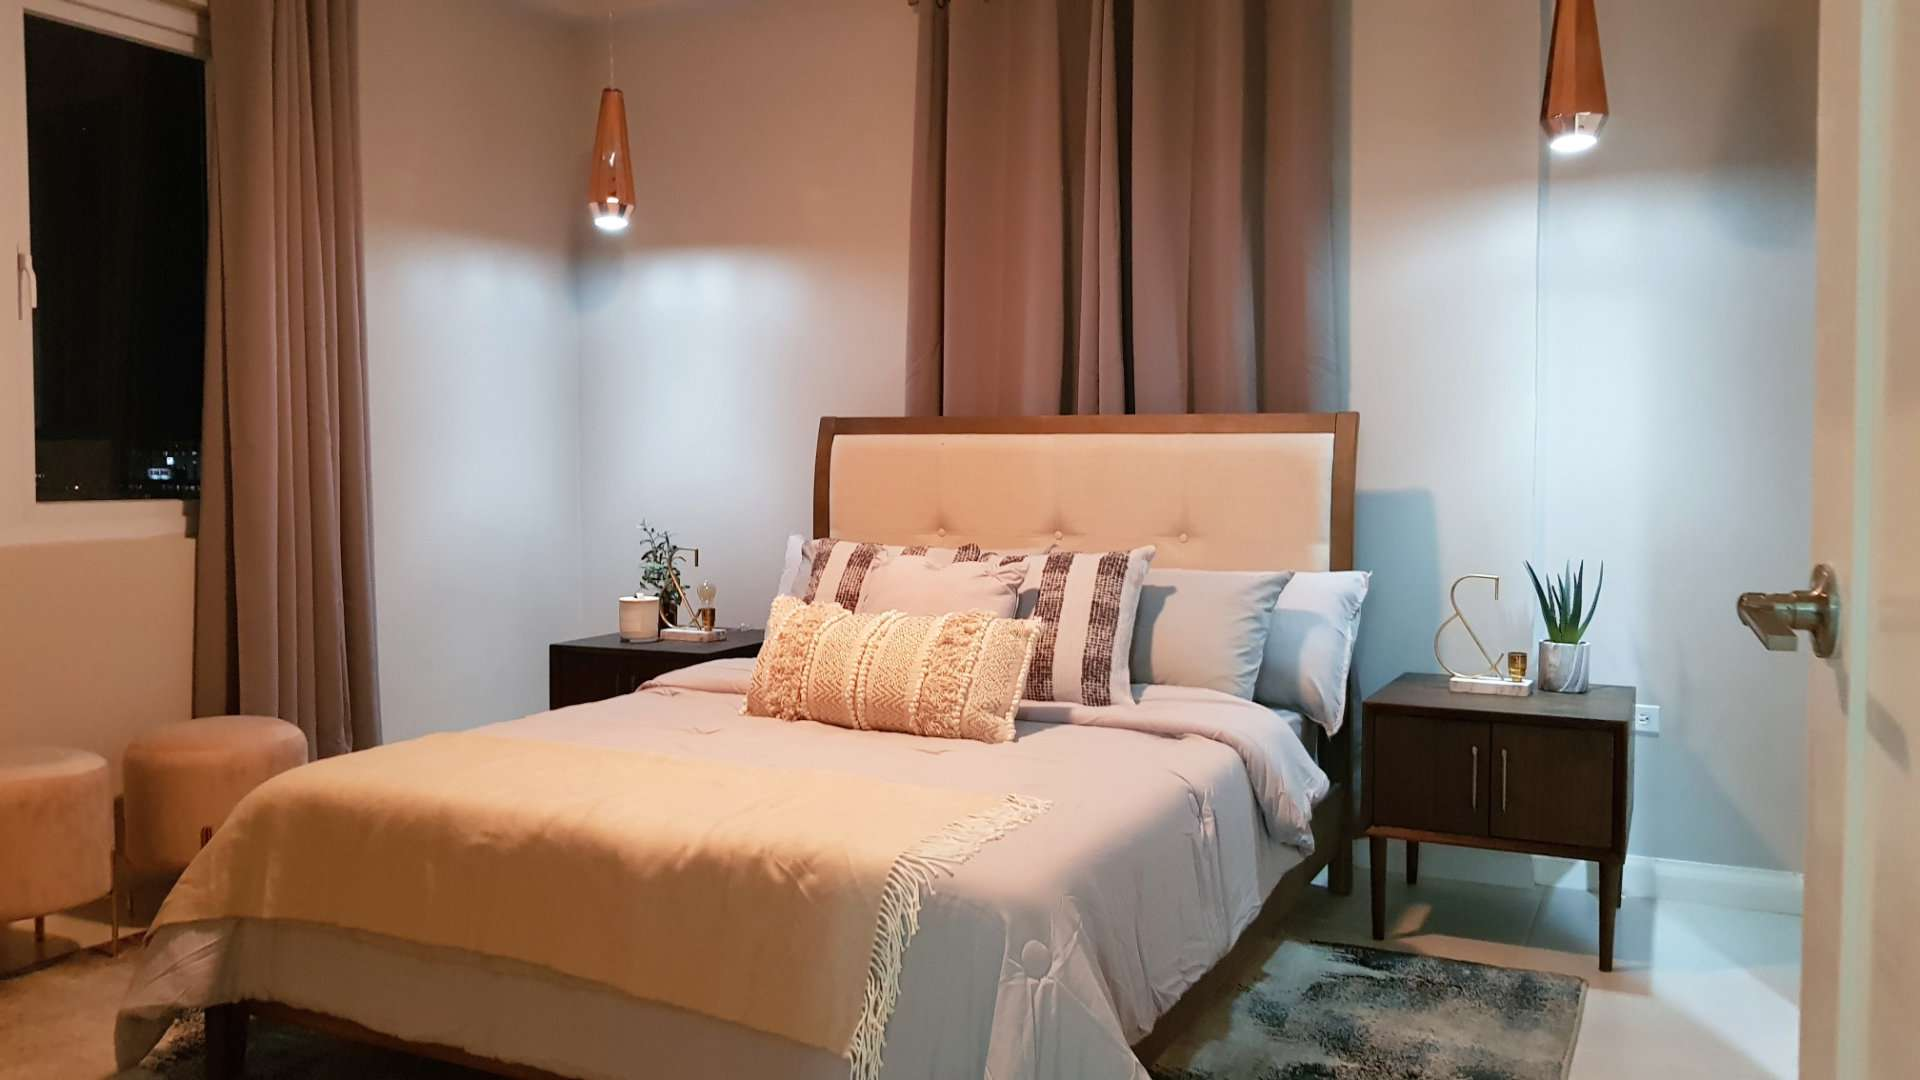 A bedroom with two pendant lights on either side of the bed.